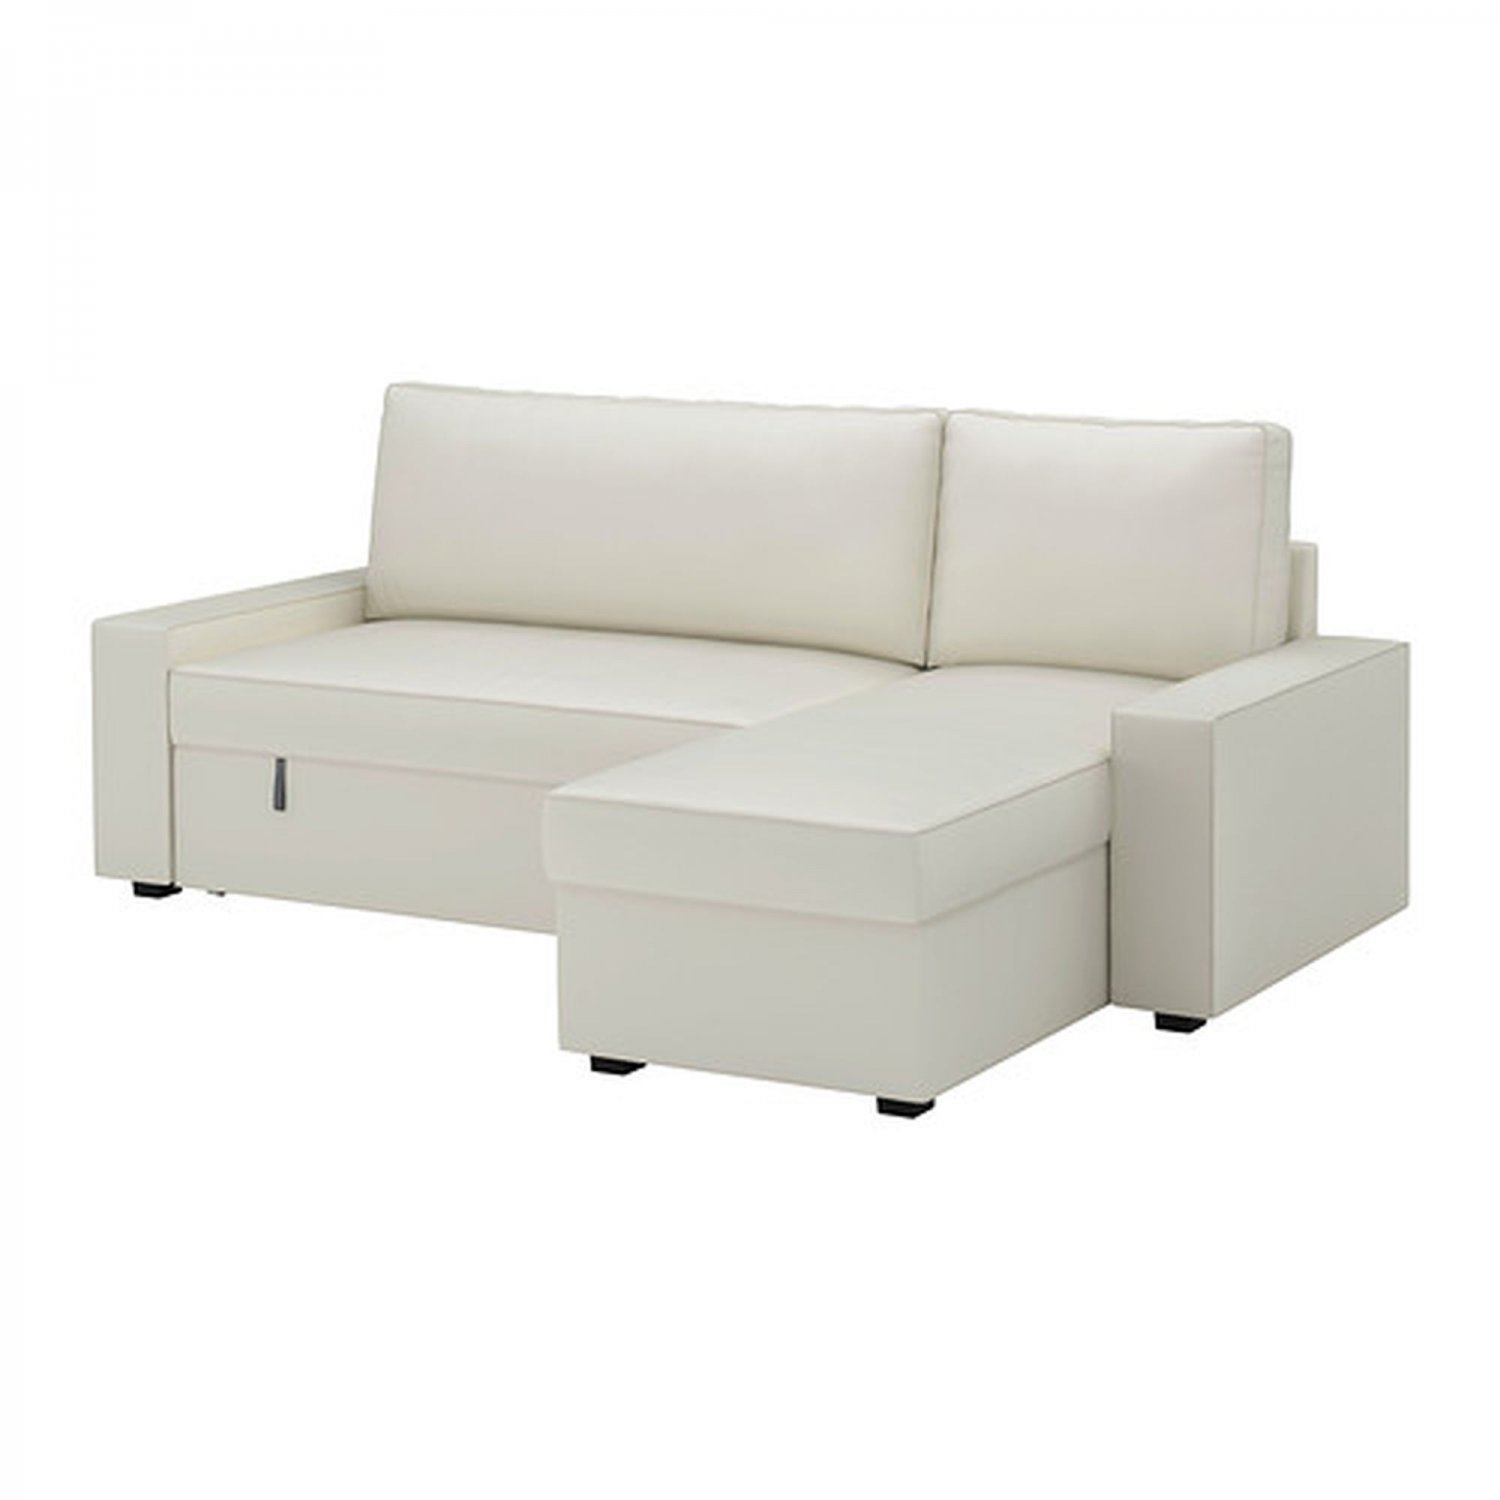 Ikea Vilasund Sofa Bed Ikea Vilasund Sofa Bed With Chaise Slipcover Sofabed Cover